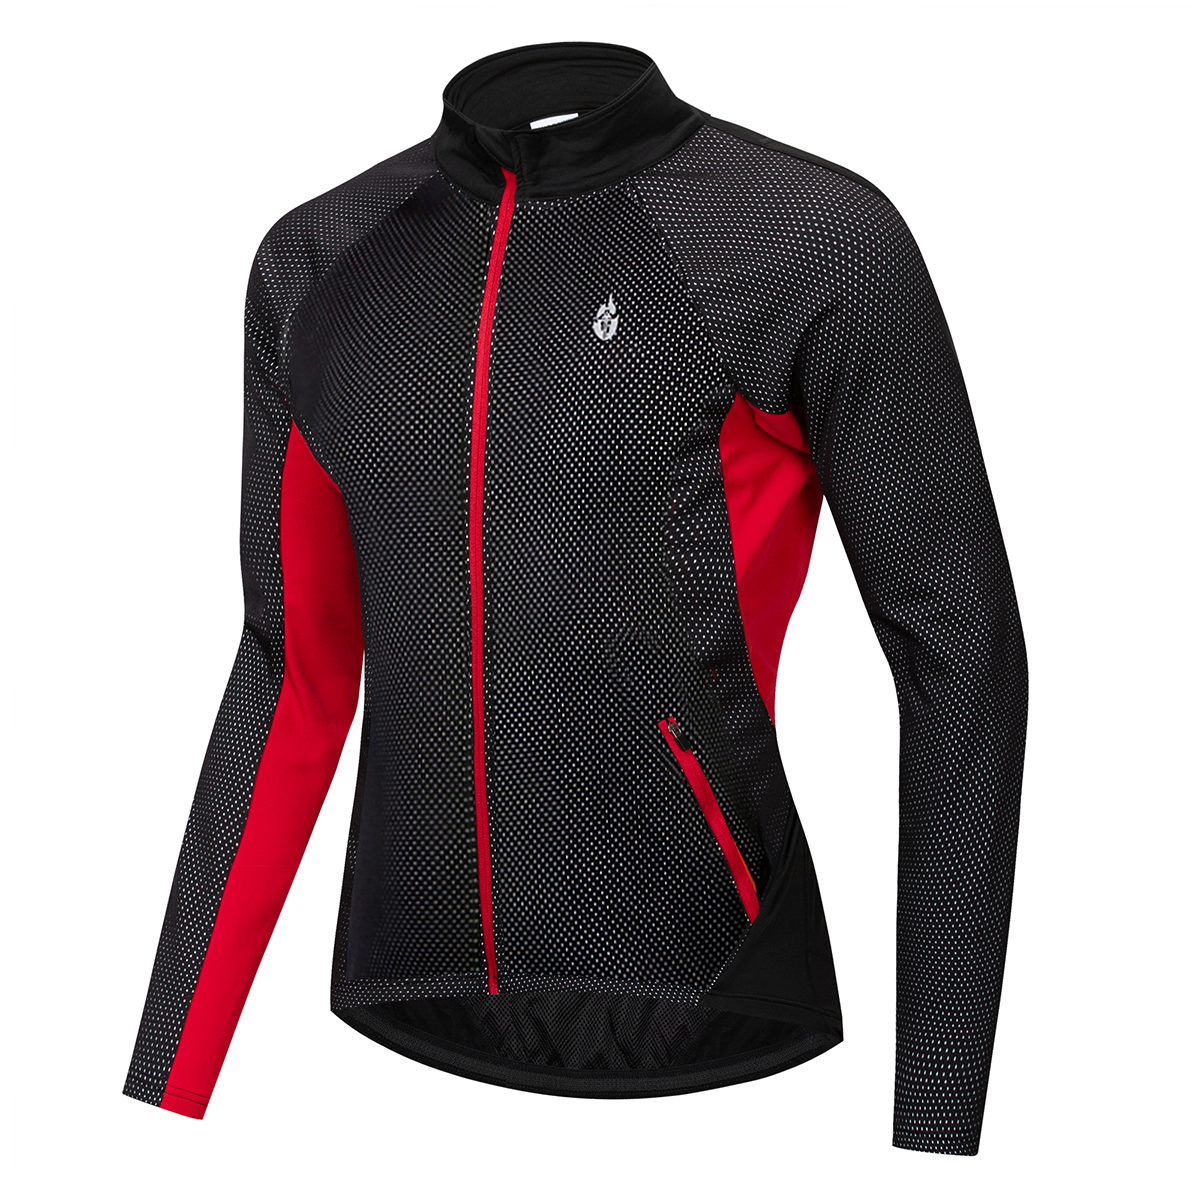 WOSAWE Men's Winter Thermal Windproof Cycling Jacket MTB Bike Bicycle Windbreaker Water repellent Sports Clothing Bicycle Jersey